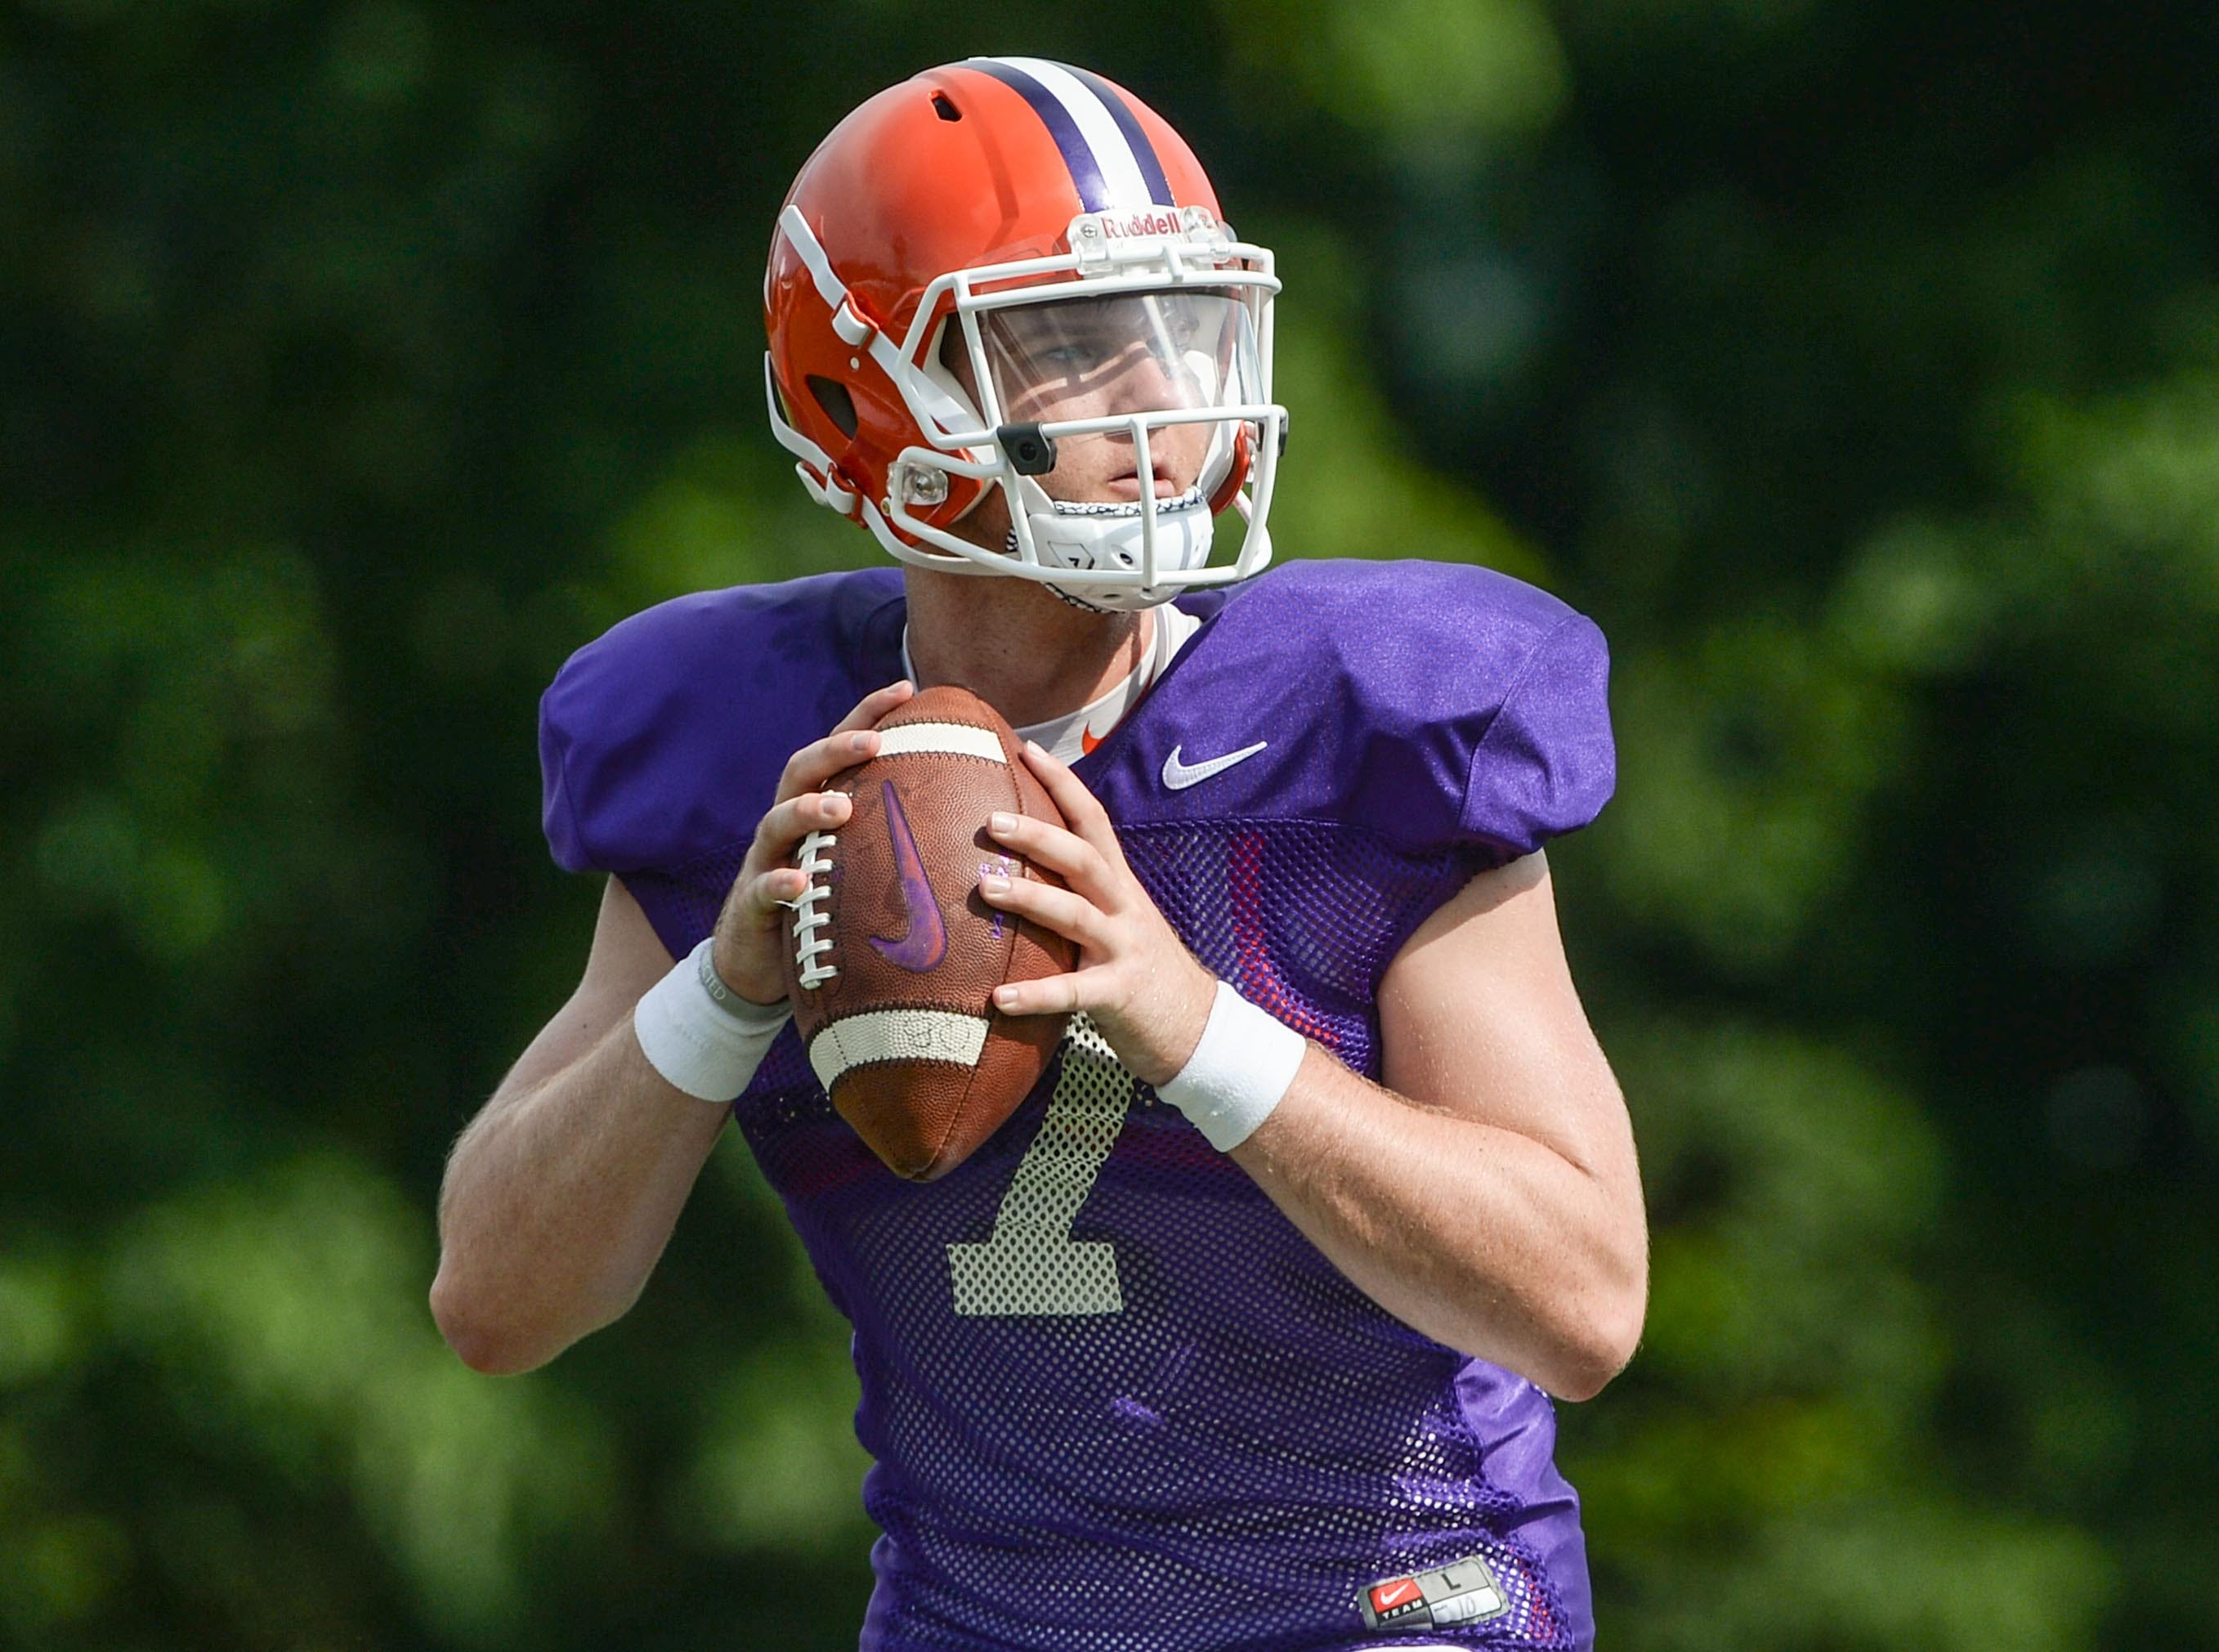 Clemson quarterback Chase Brice (7) during fall practice in Clemson on Wednesday.